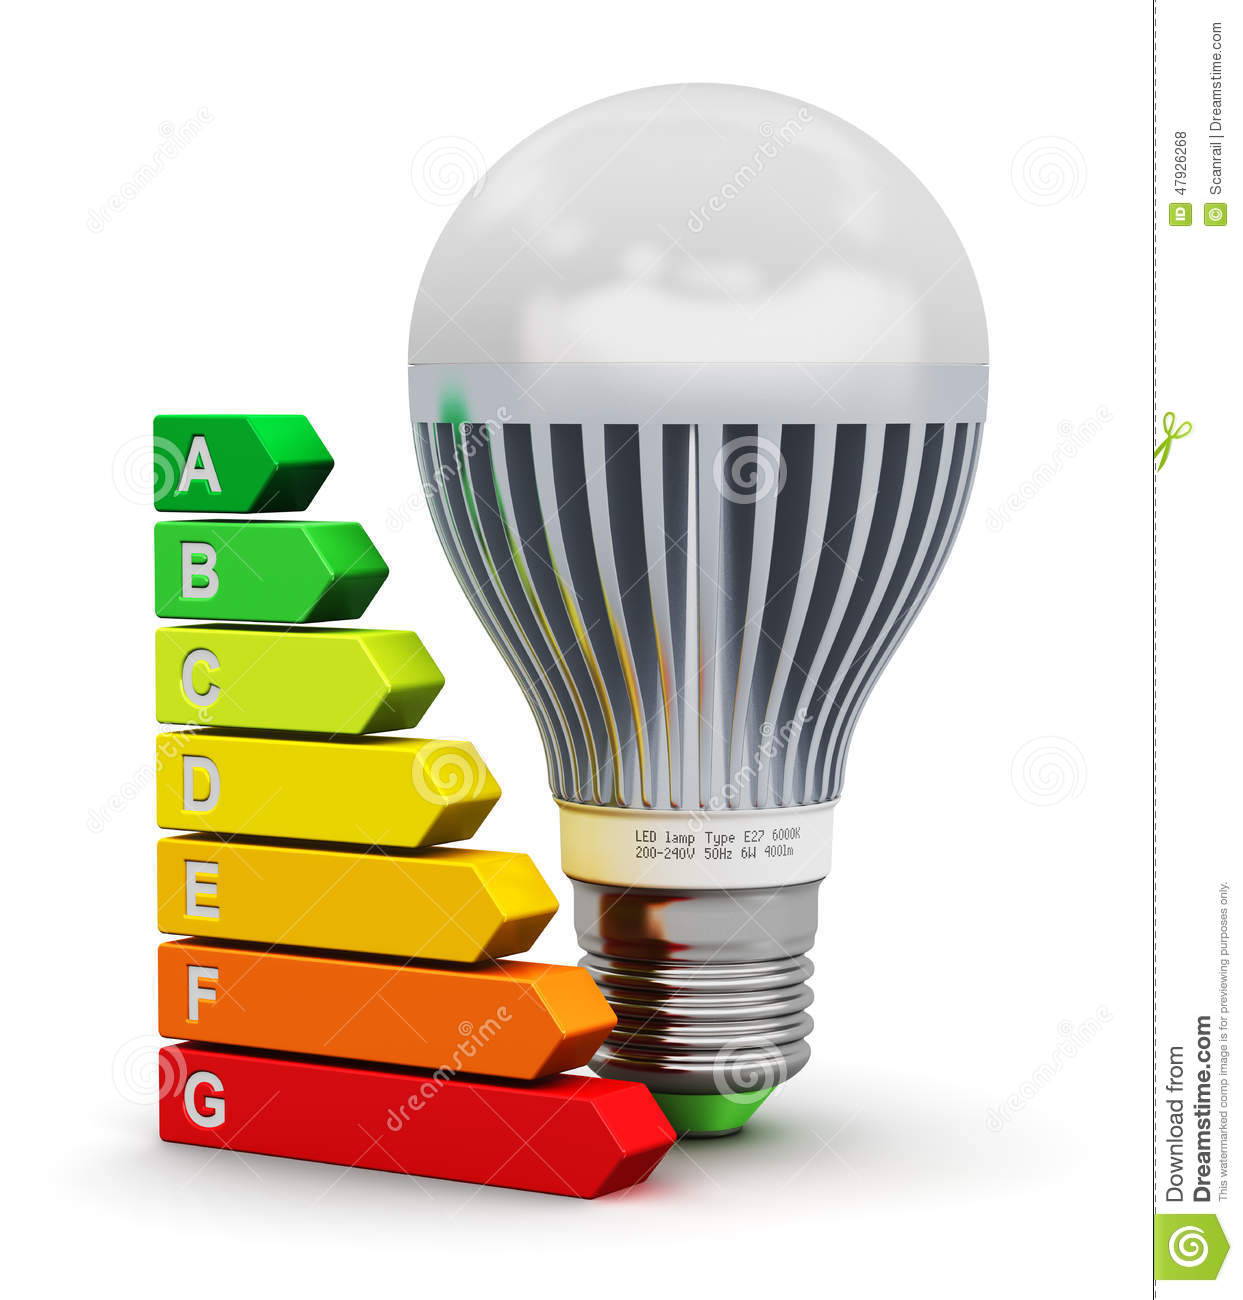 LED Lamp And Energy Efficiency Rating Scale